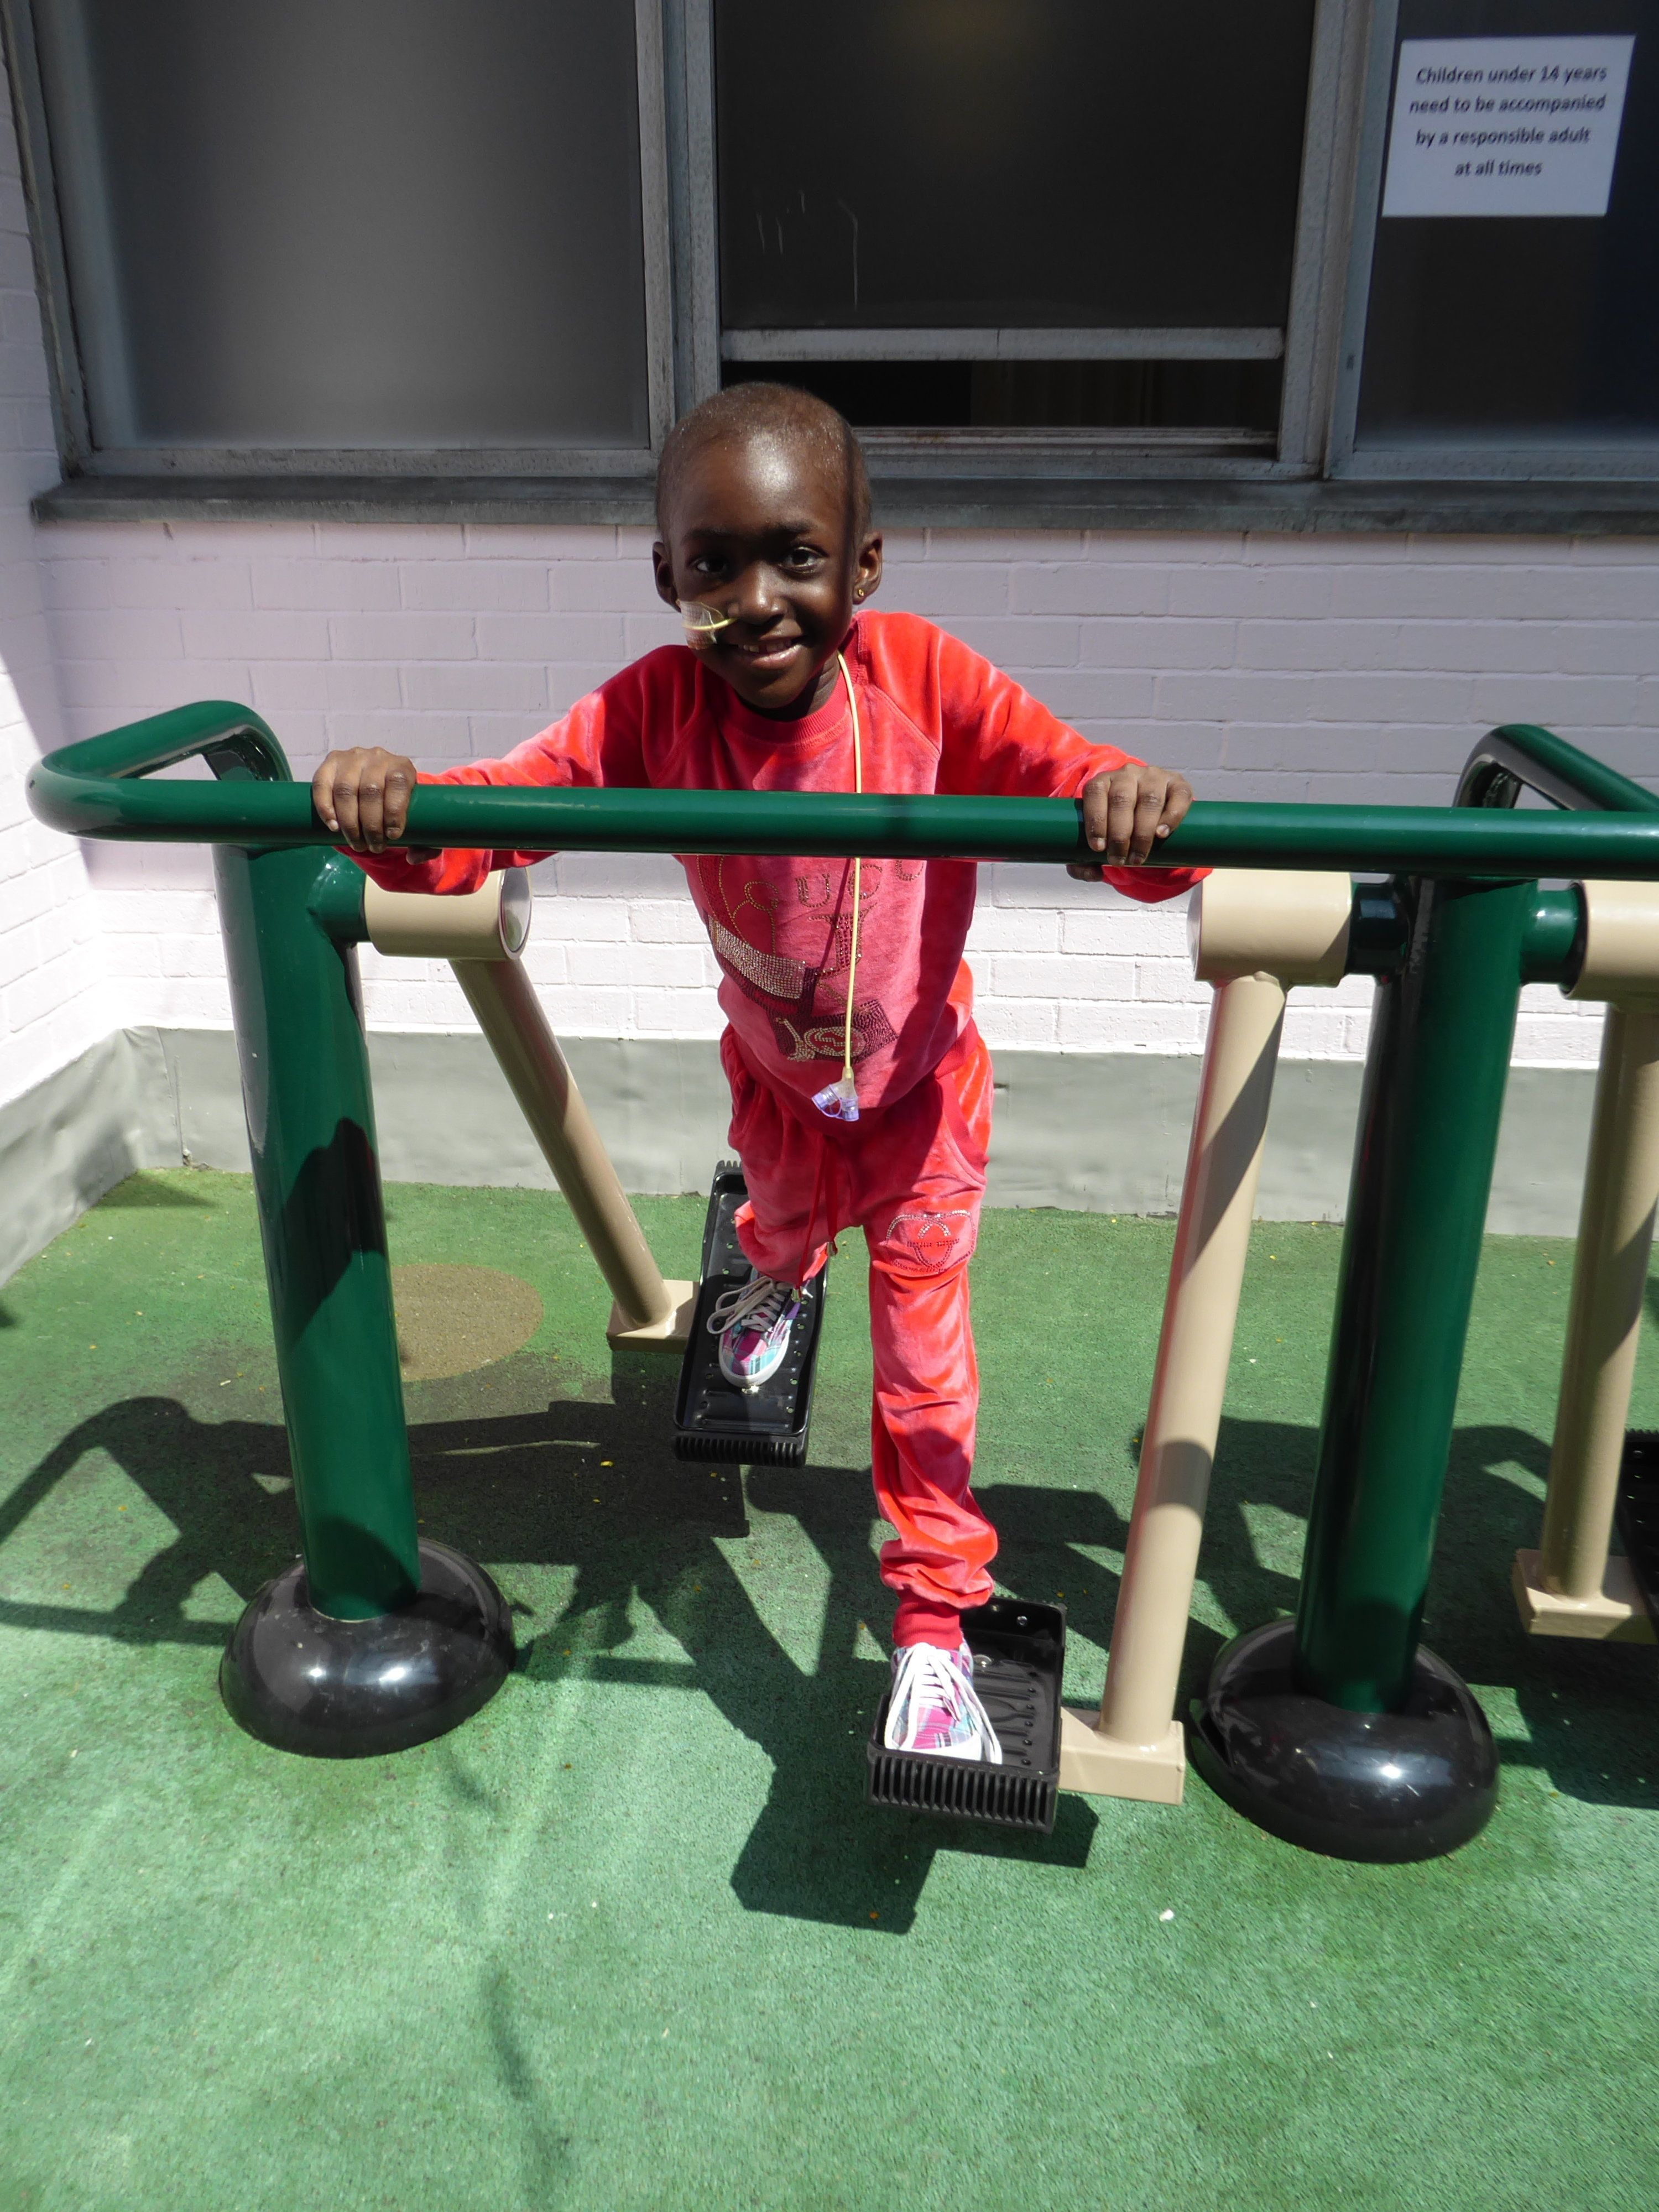 Why I Created An Activity Garden For Children Being Treated For